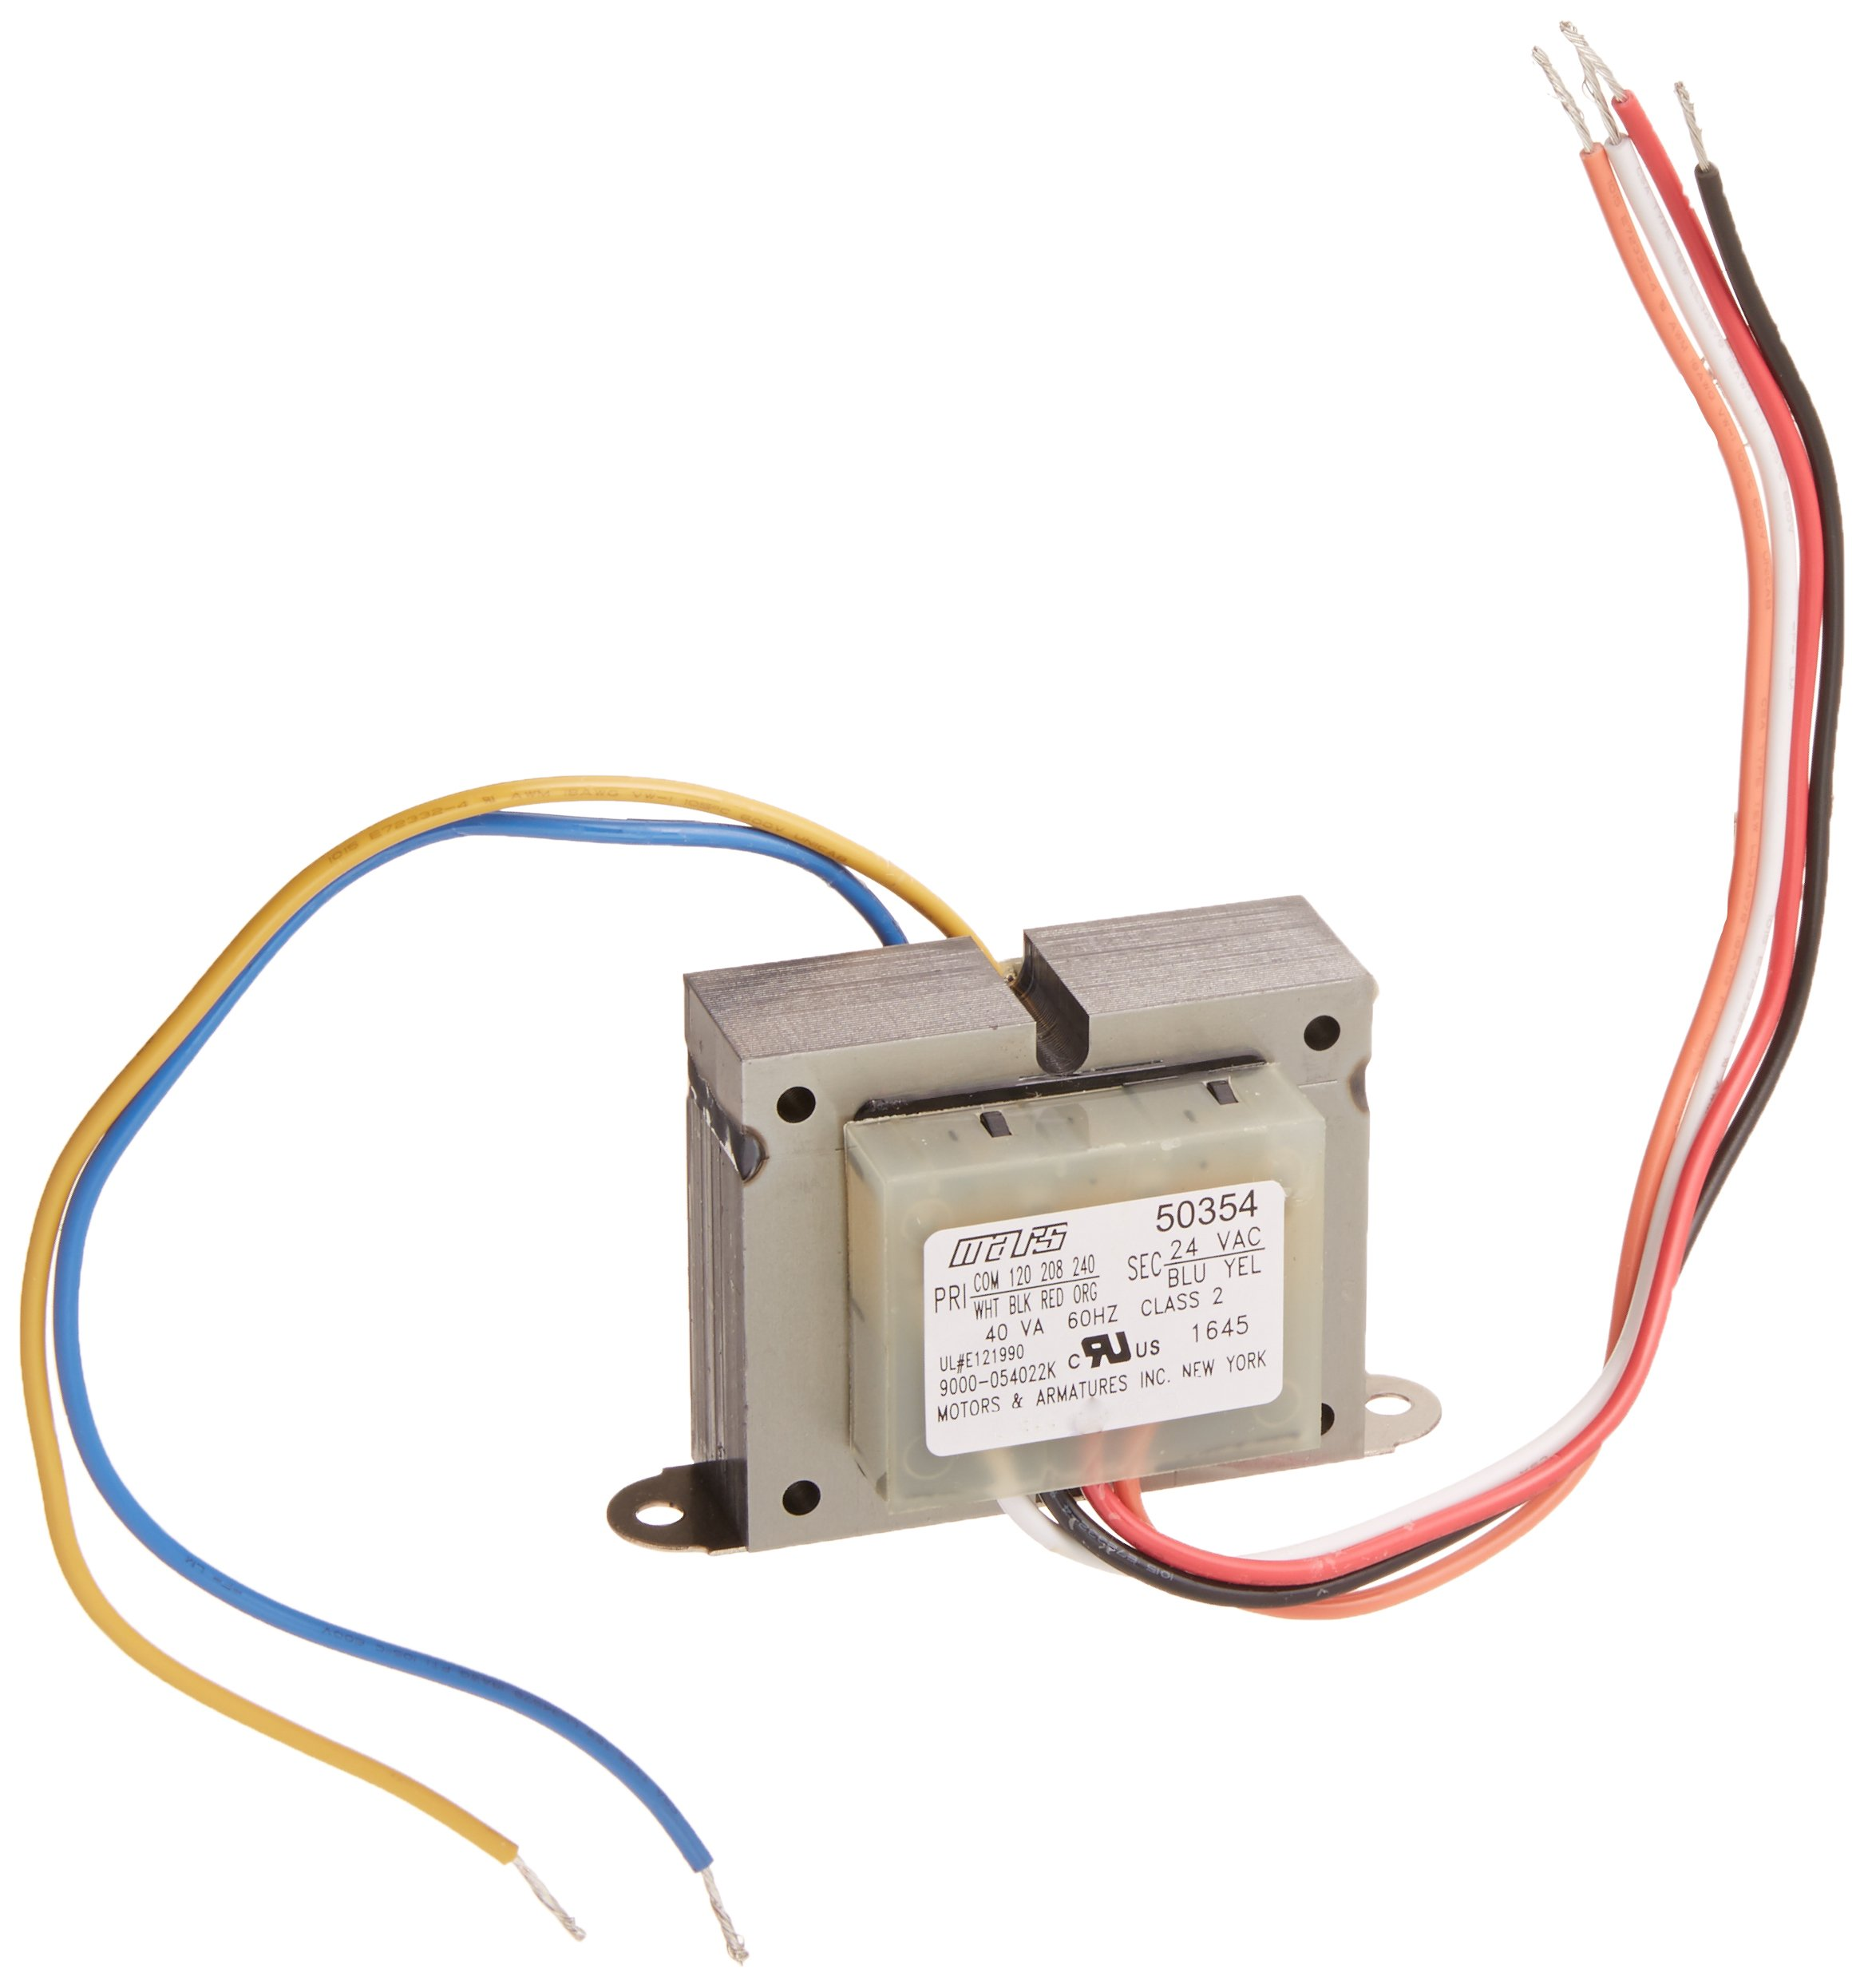 Mars Motors Armatures 50354 40va 120 208 240v To 24v Industrial Wiring Diagram Transformer Home Improvement